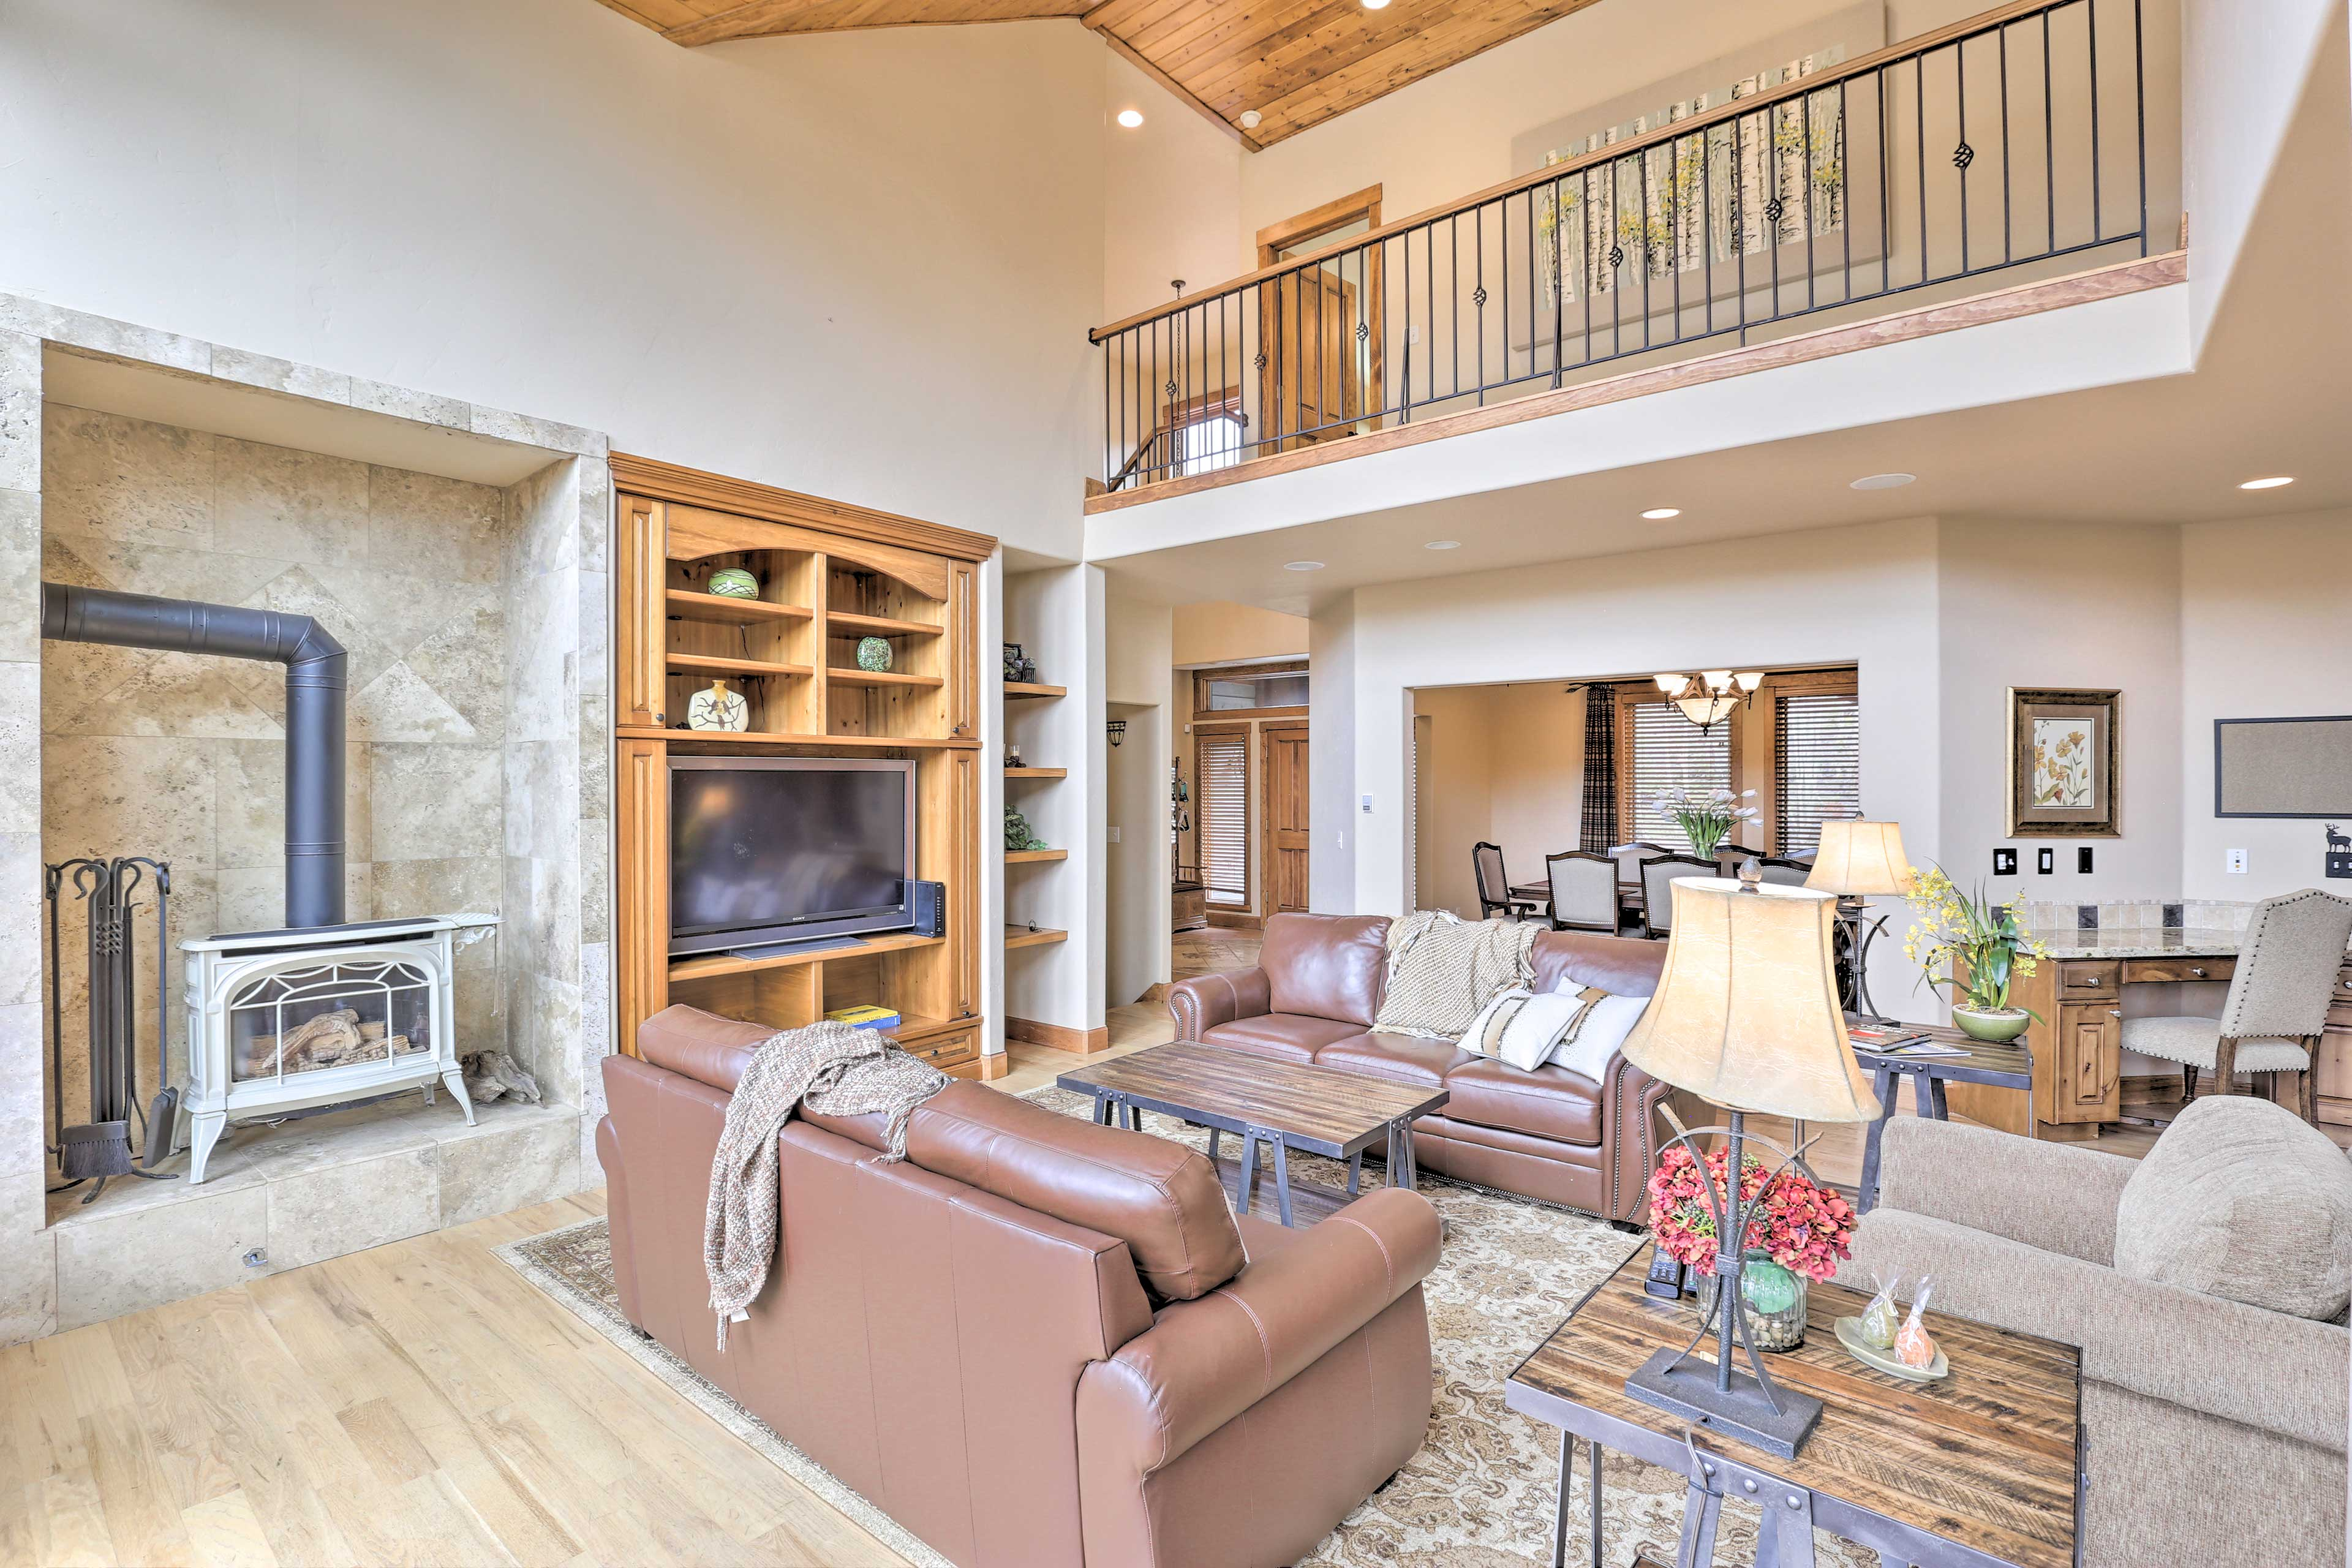 Socialize in the light & airy upstairs living room.